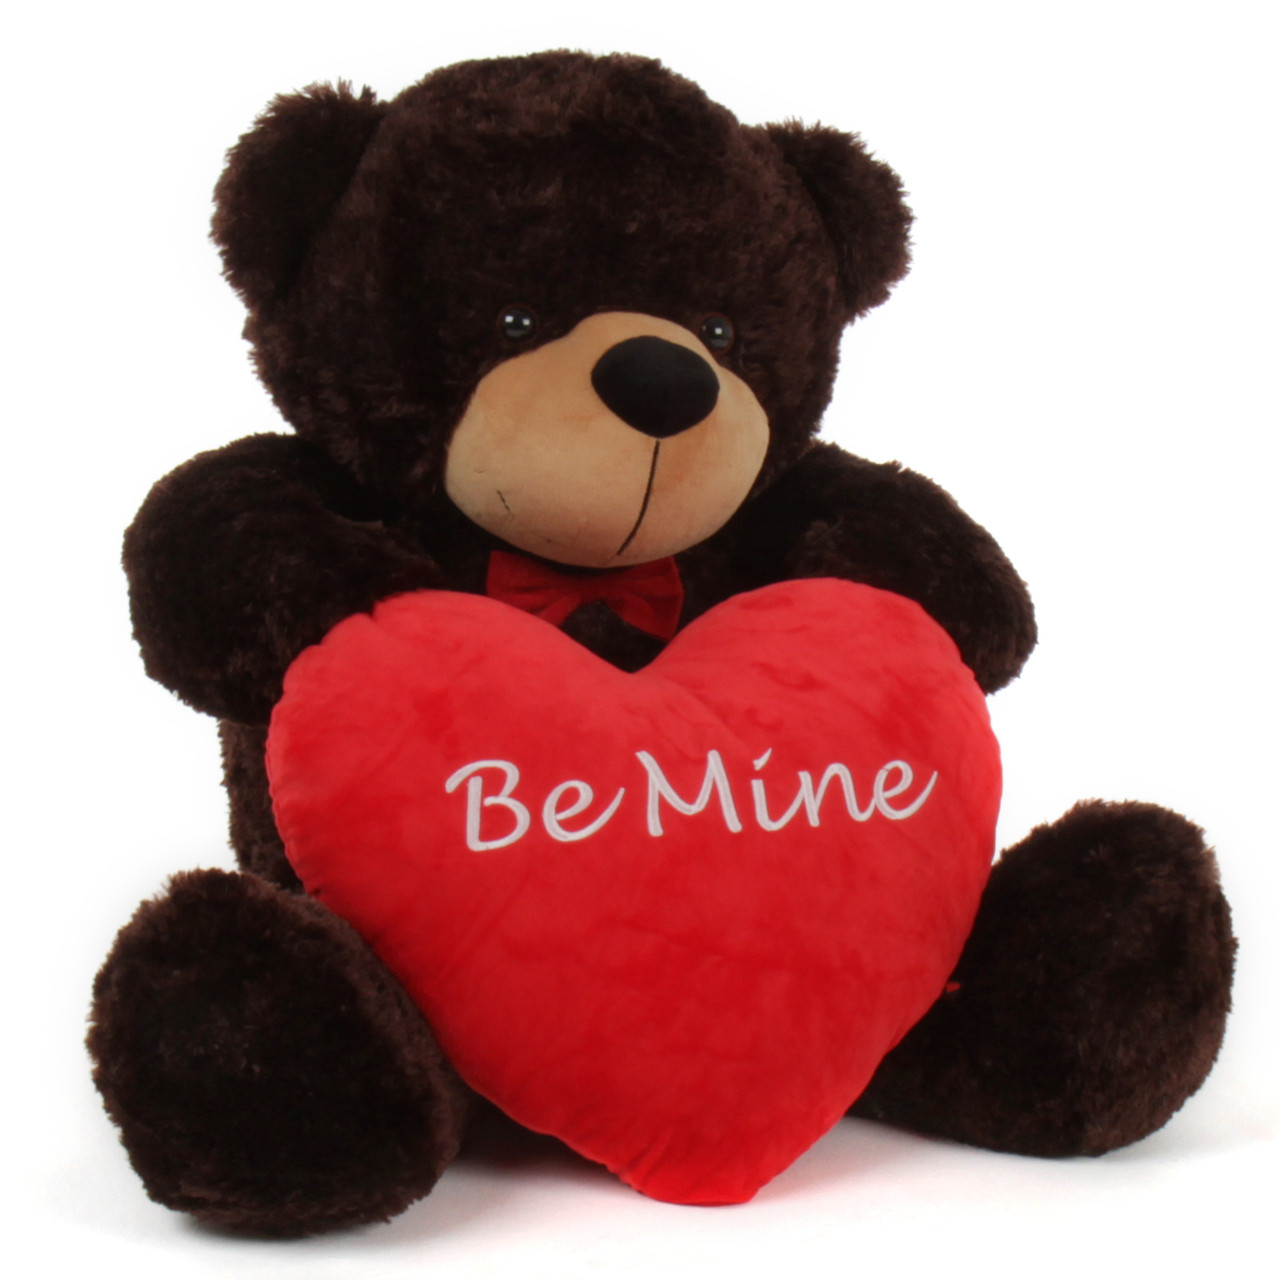 Giant Teddy 38in Brownie Cuddles Valentines Day Bear W Be Mine Red Heart